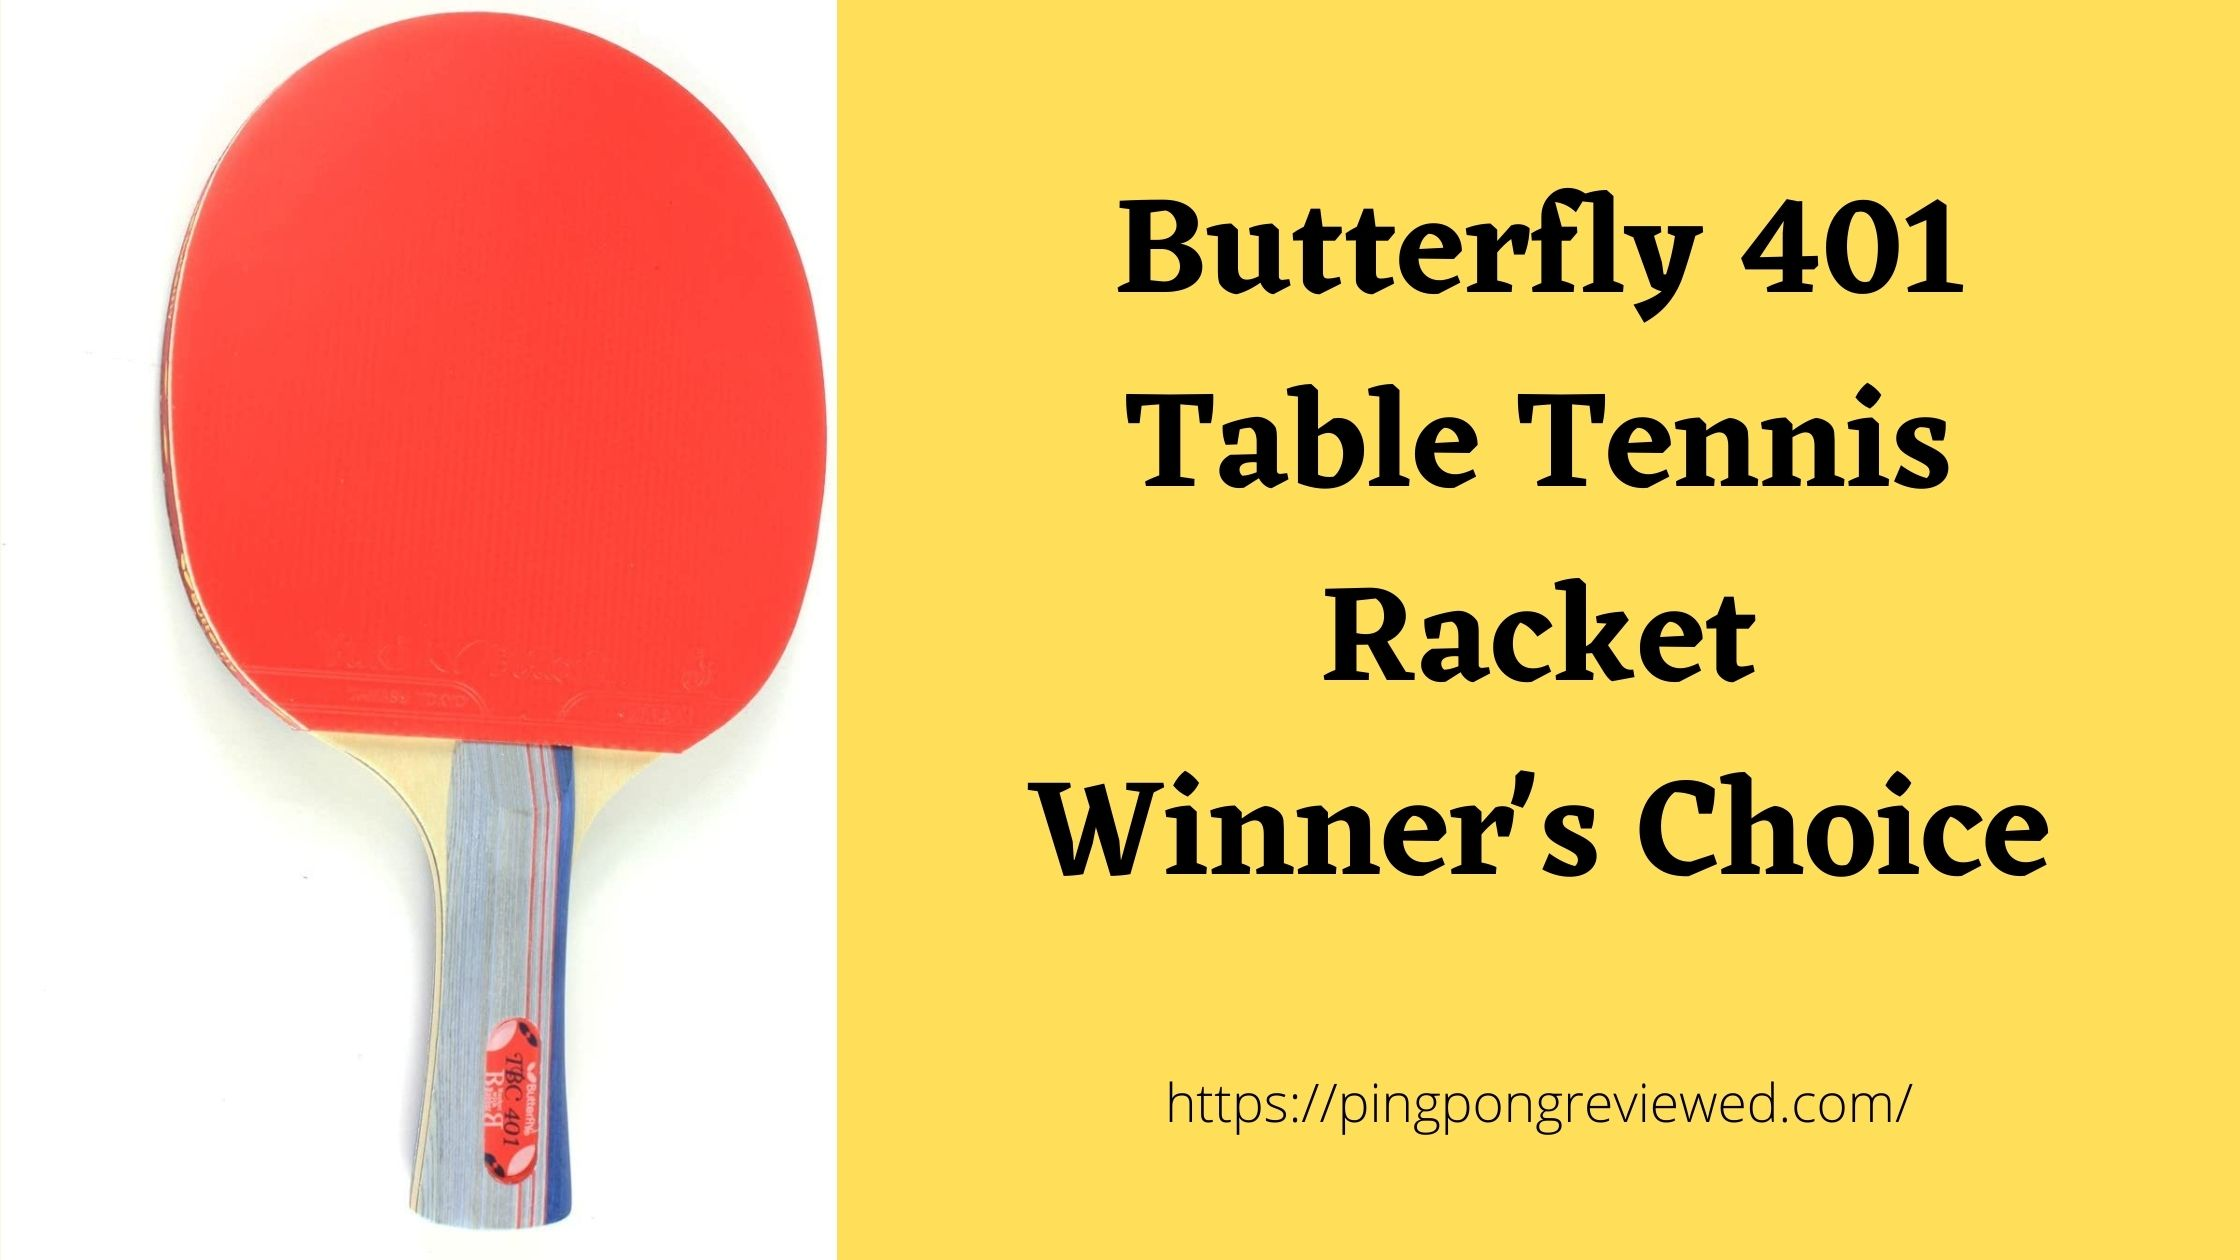 Butterfly 401 Table Tennis Racket